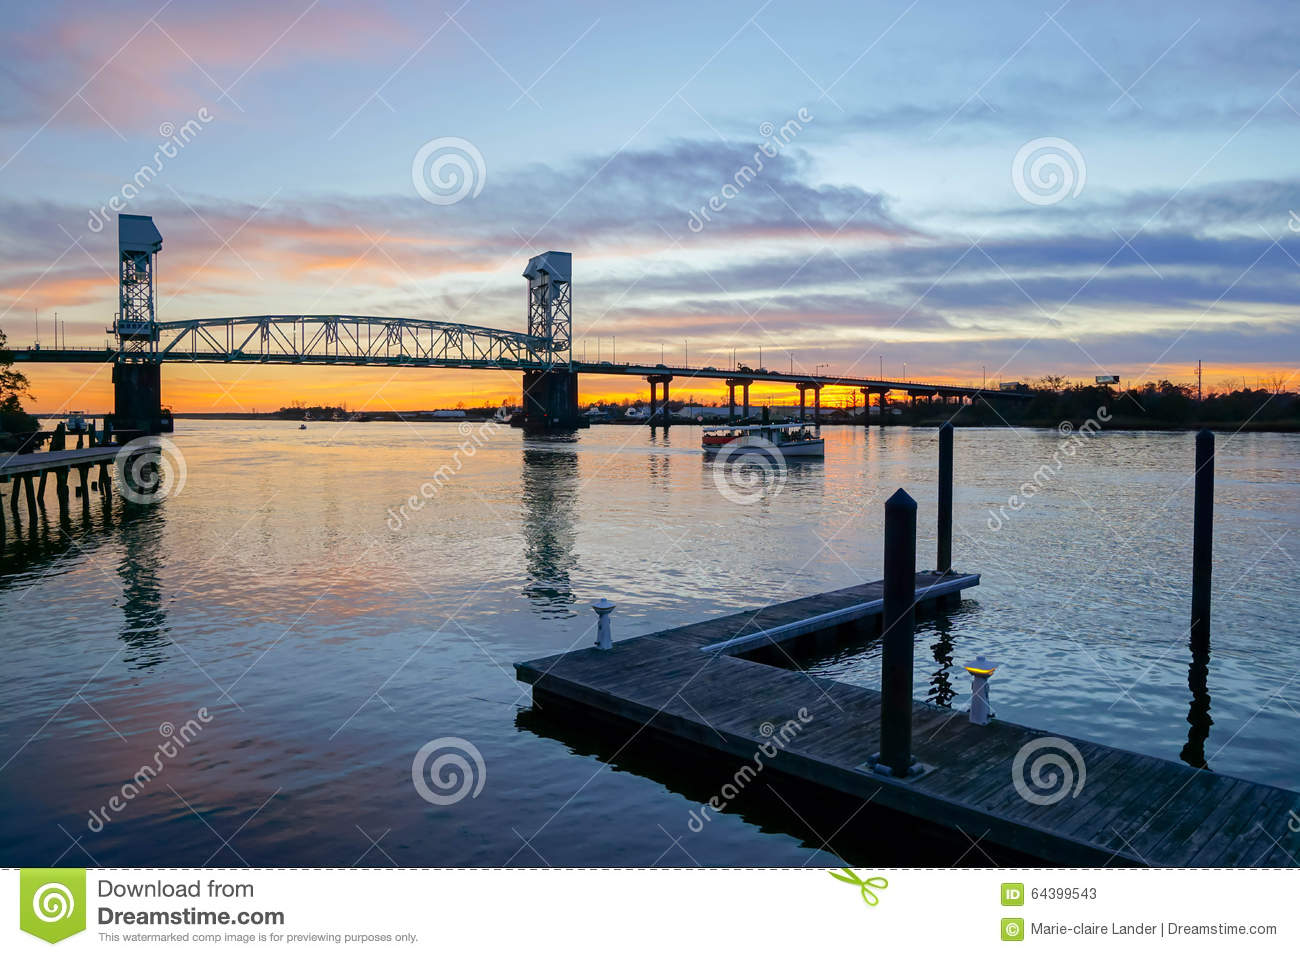 Cape Fear river bridge at sunset, Wilmington